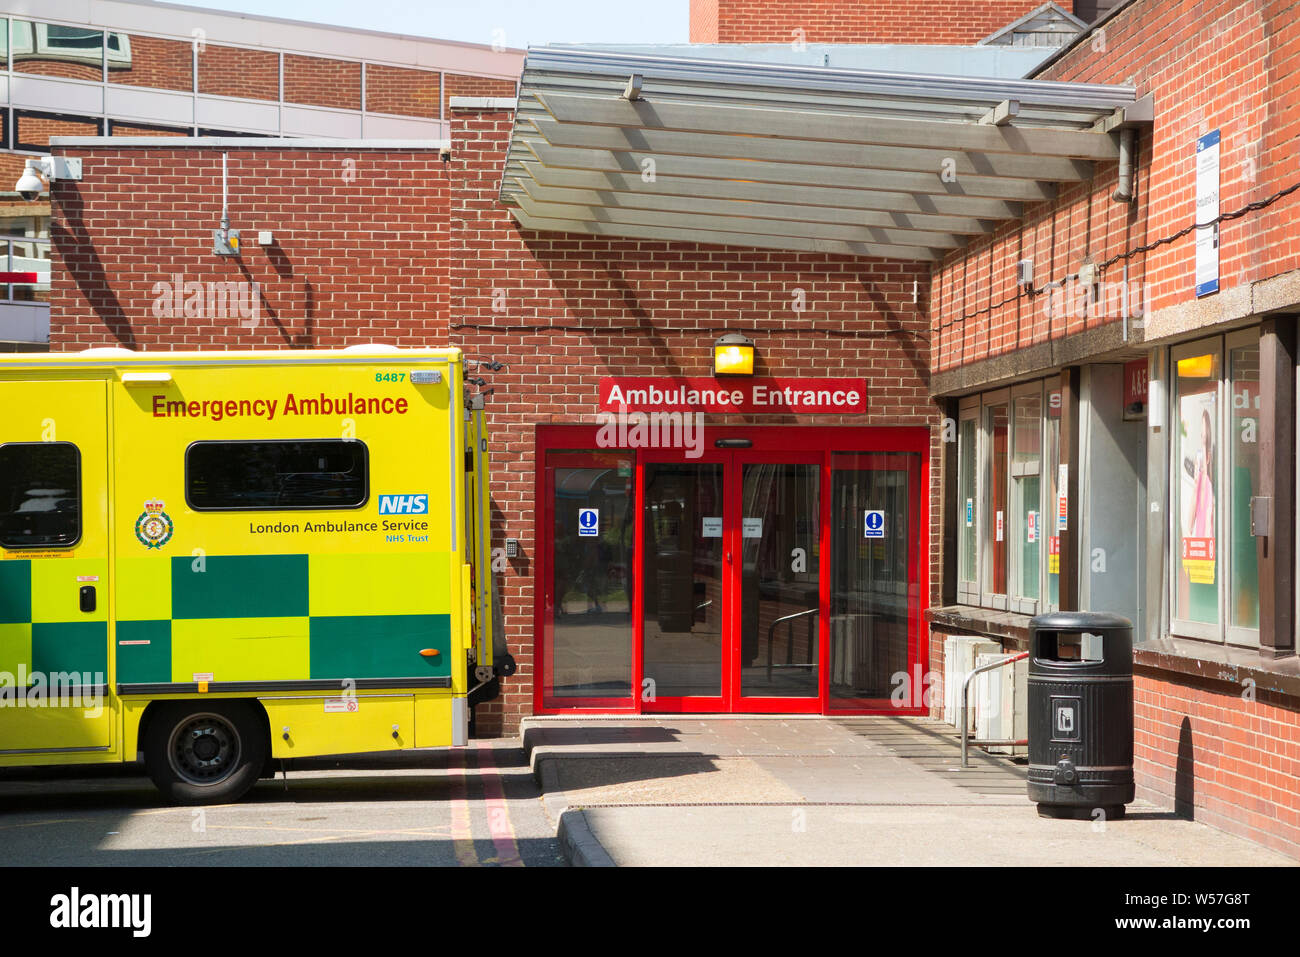 Ambulance and accident and emergency department of Saint Georges Hospital in Tooting, London. UK. Saint Georges in tooting is the main hospital of St George's University hospitals NHS foundation trust. (111) Stock Photo